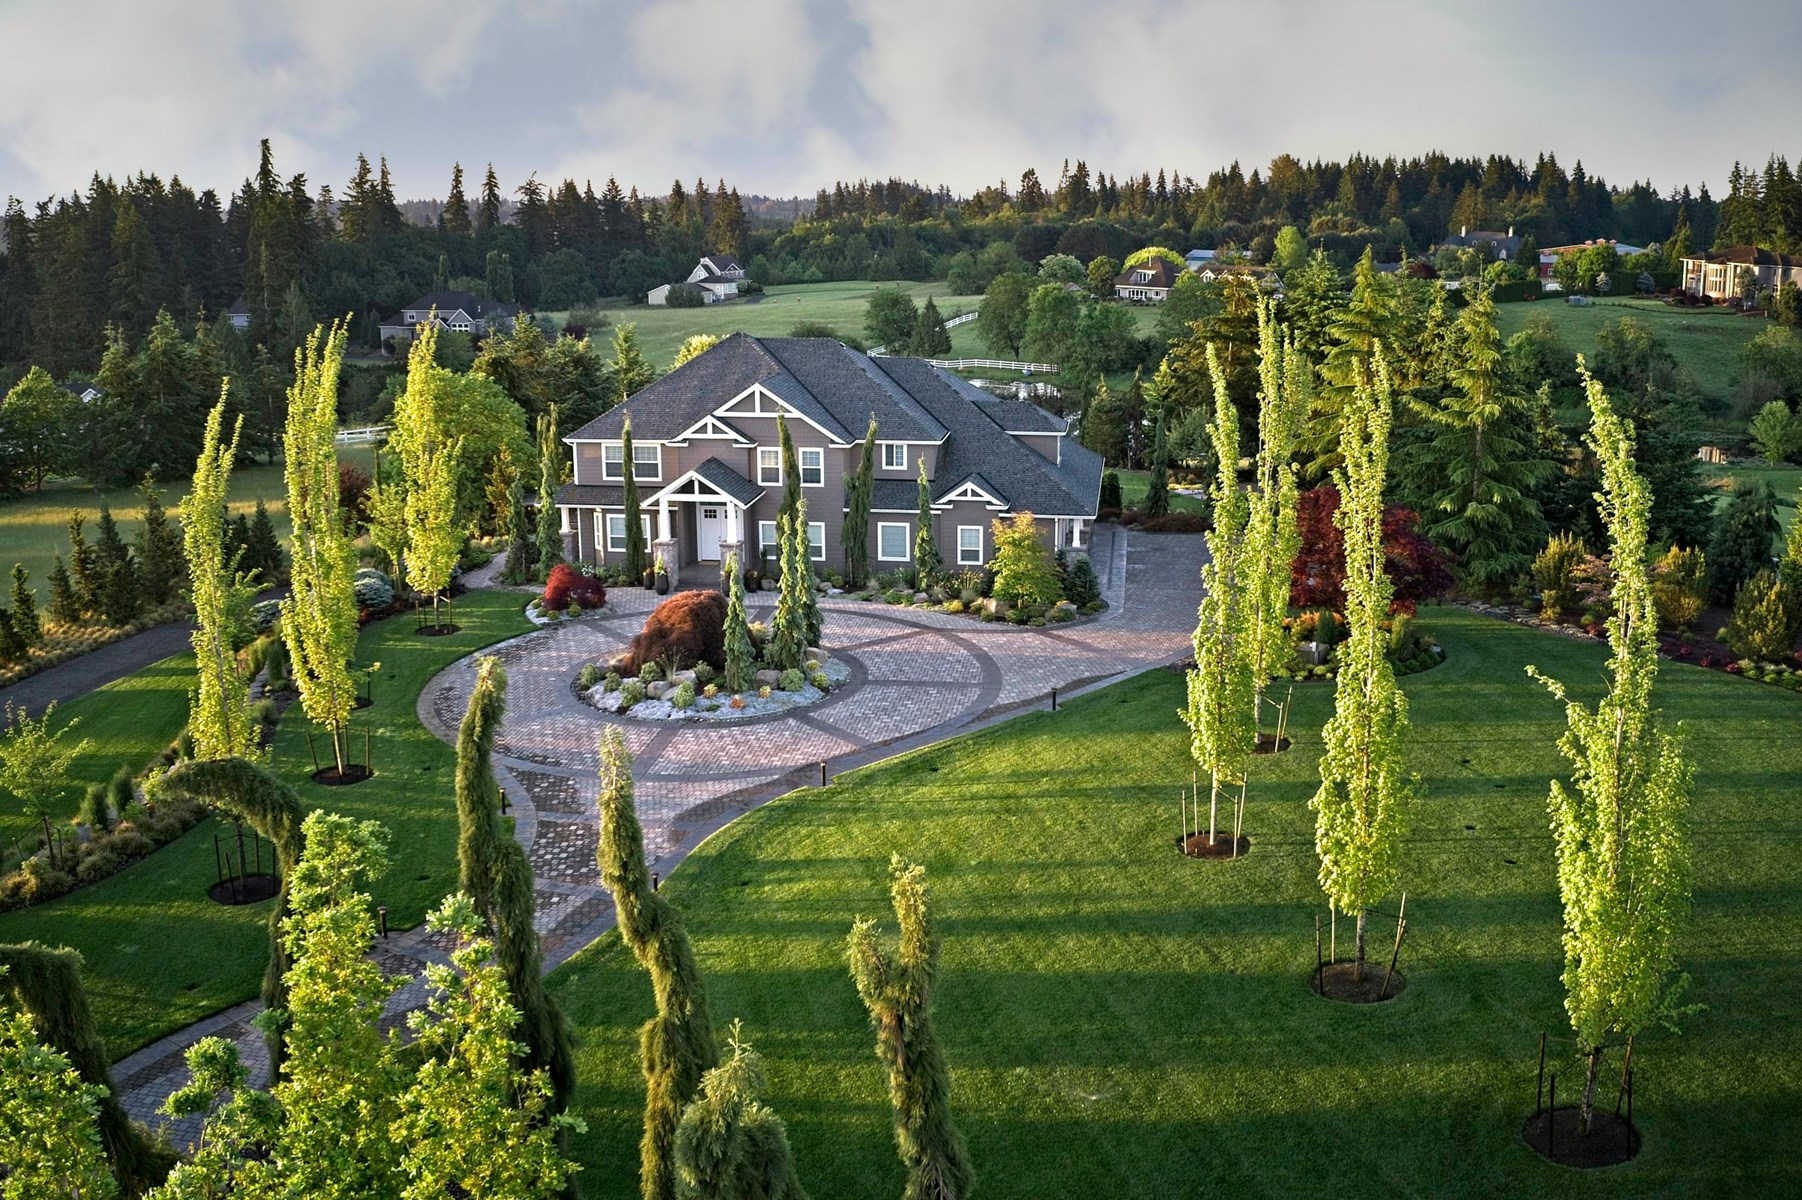 Luxury Home on Acreage for sale in Ridgefield Washington